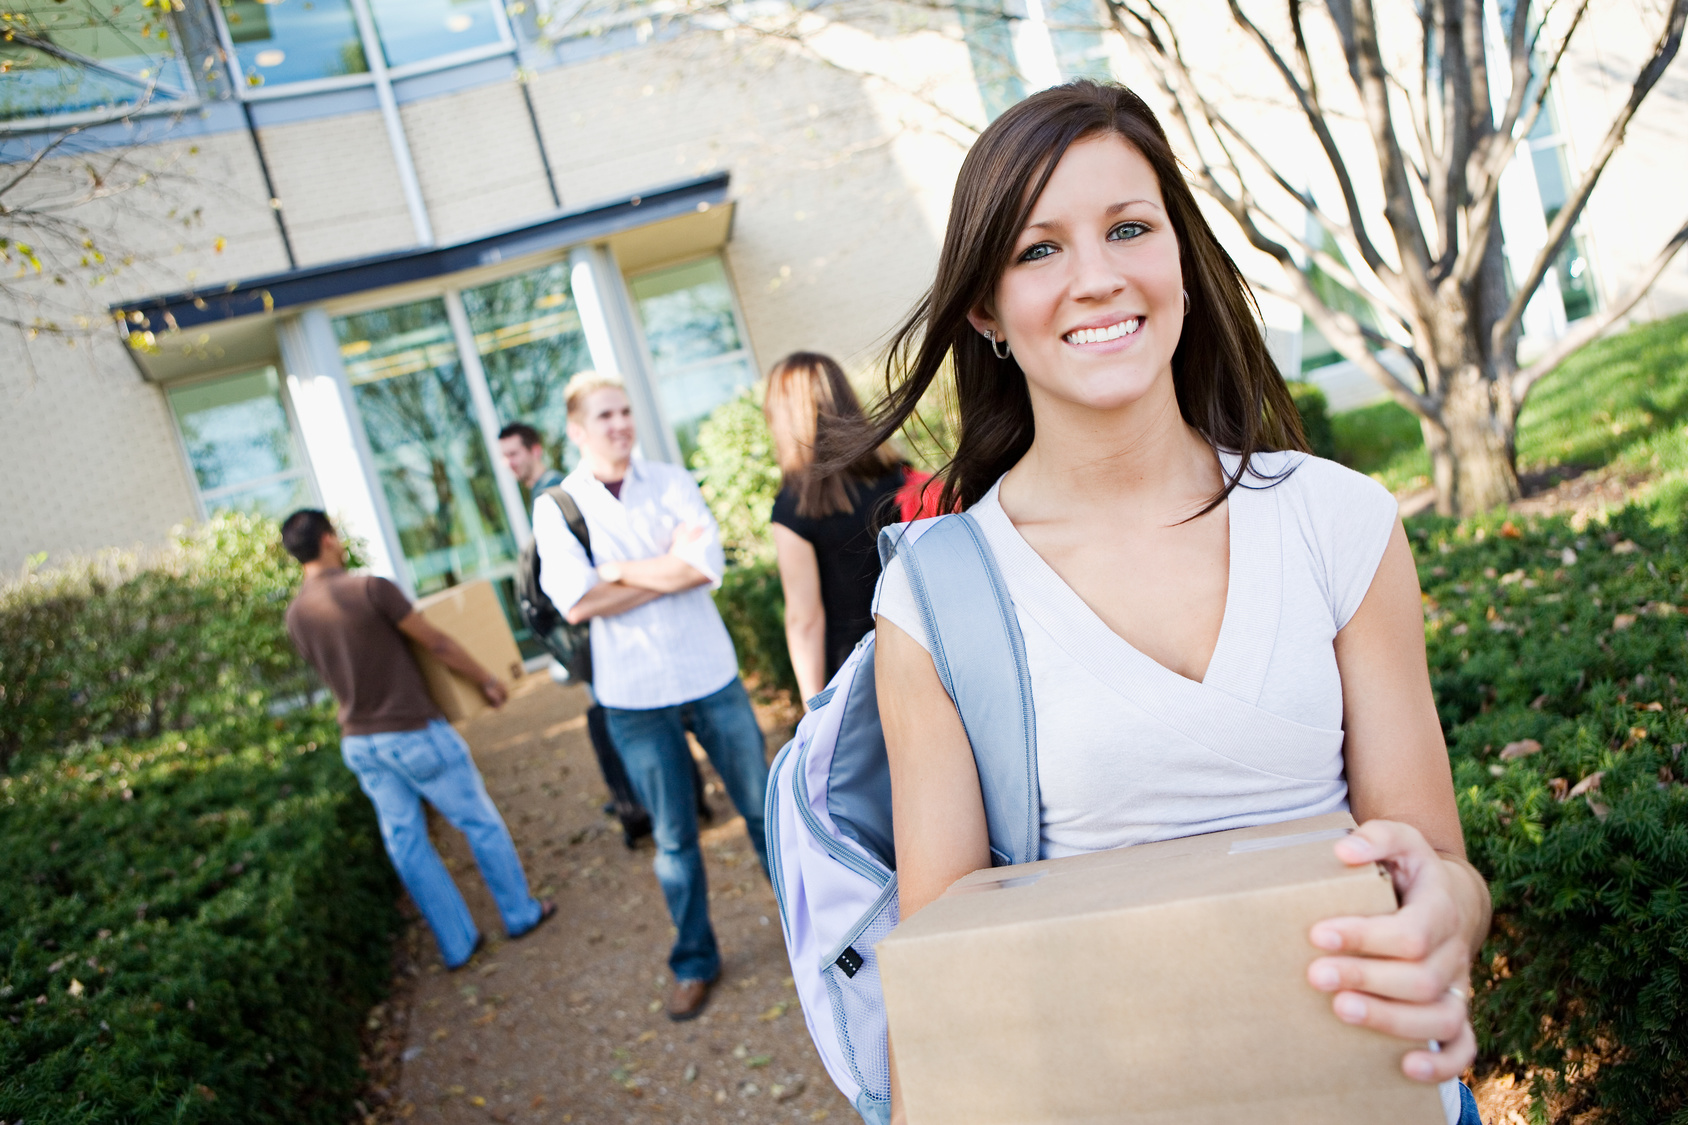 College-Girl-Smiling-Holding-Box-Walking-Outside